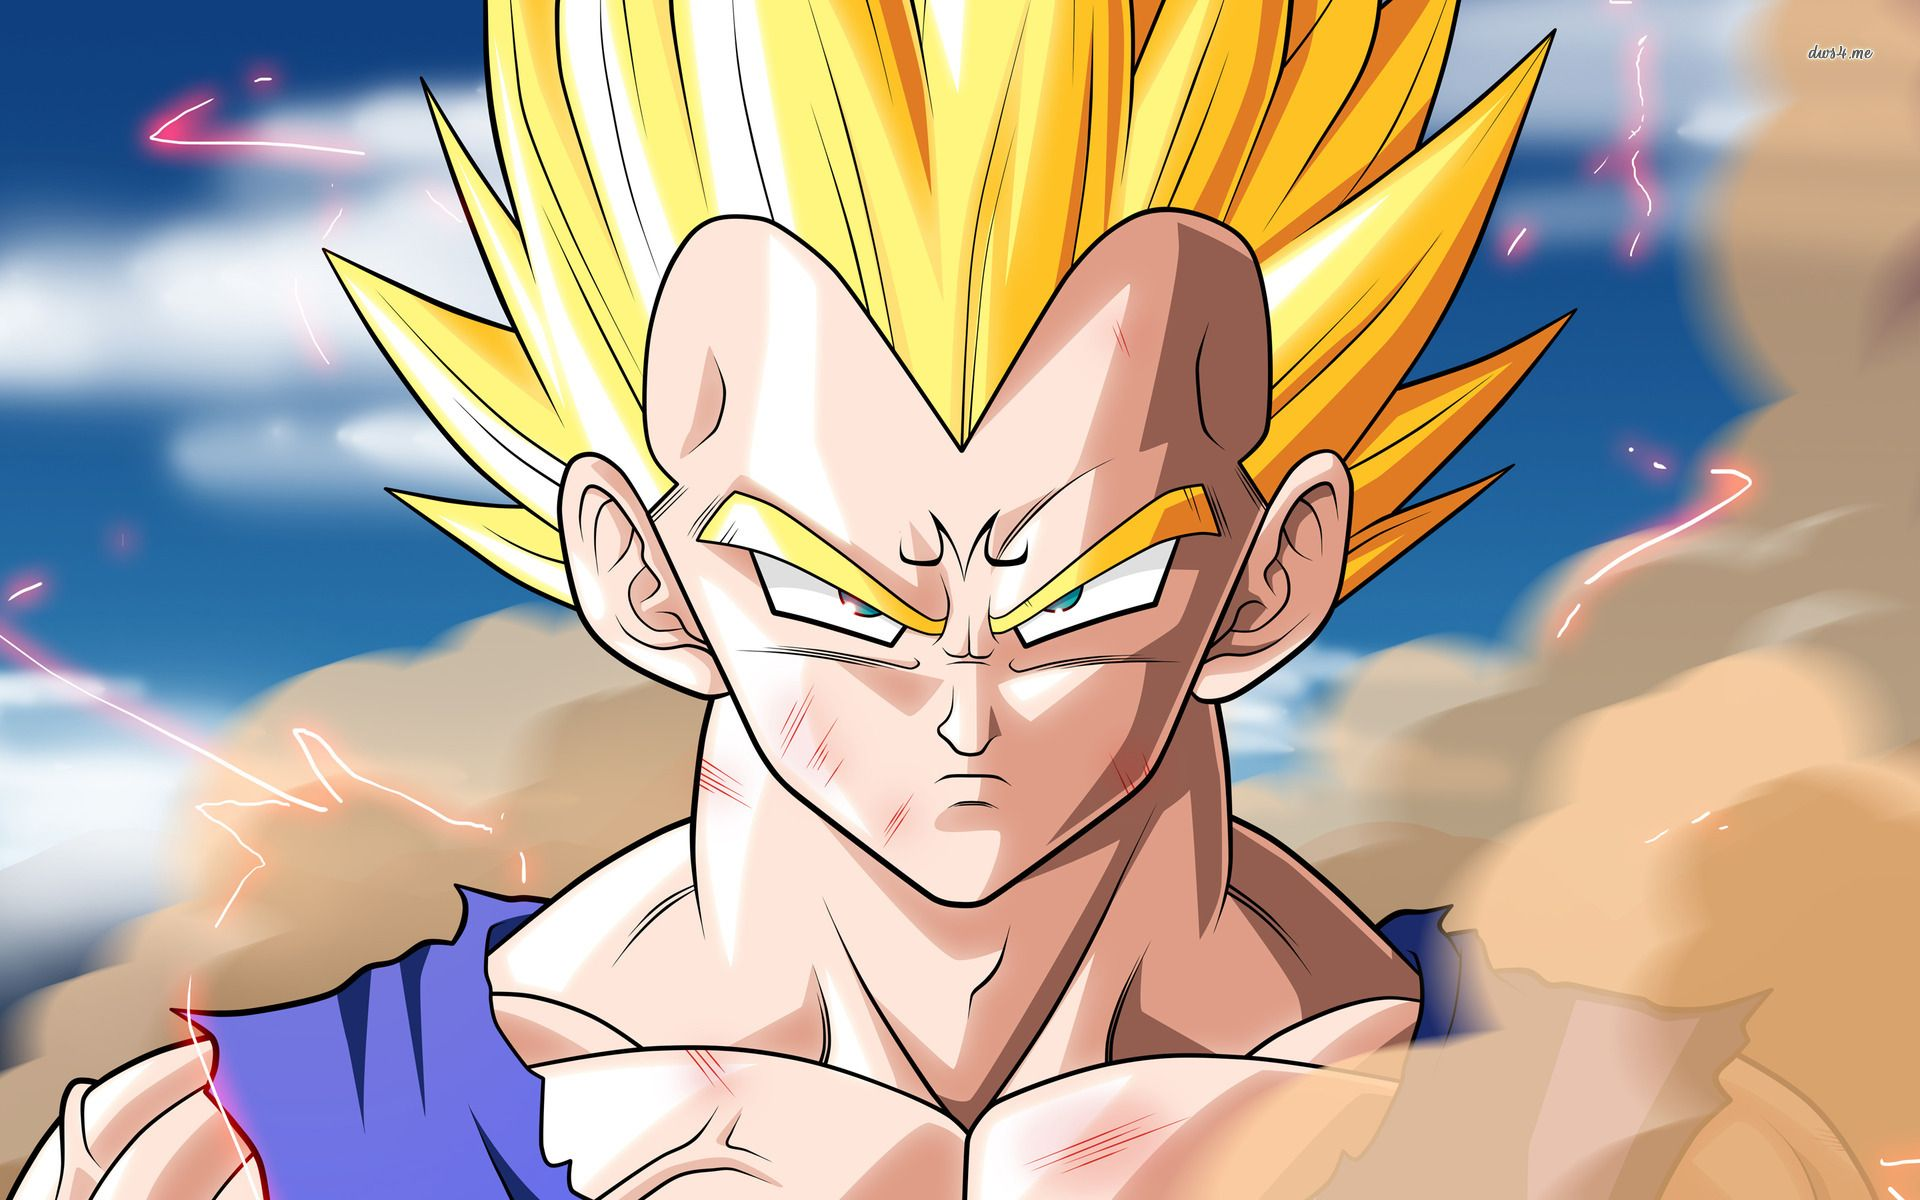 dragon ball z vegeta wallpapers high quality download free | hd